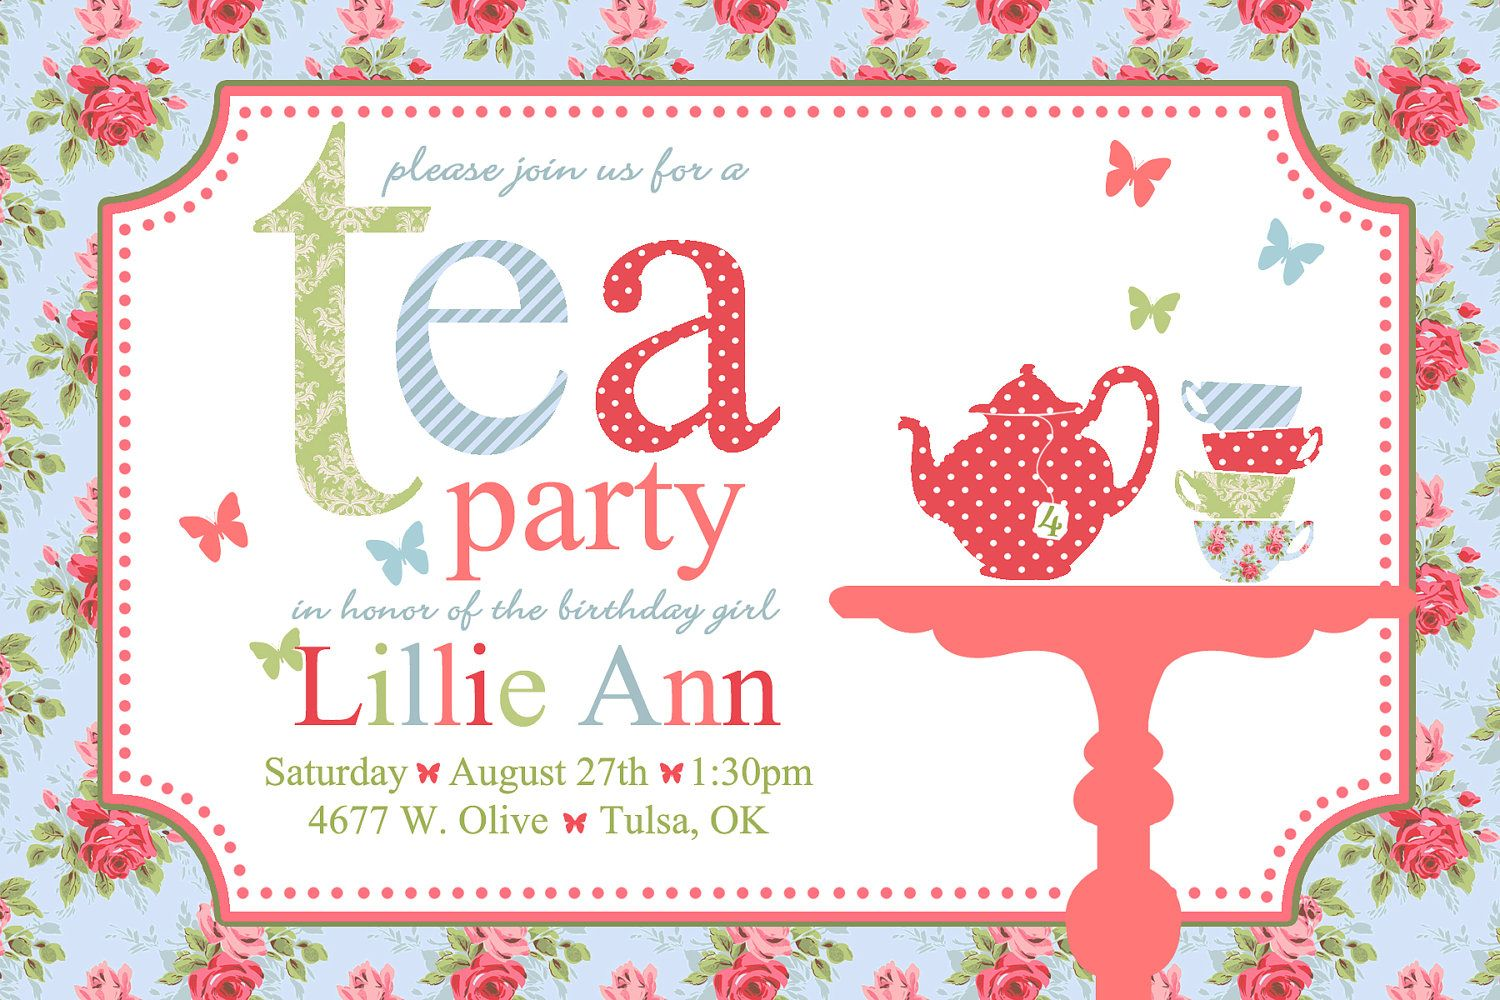 More Pretty Colours And Patterns Party Ideas And Inspiration - Party invitation template: tea party baby shower invitation templates